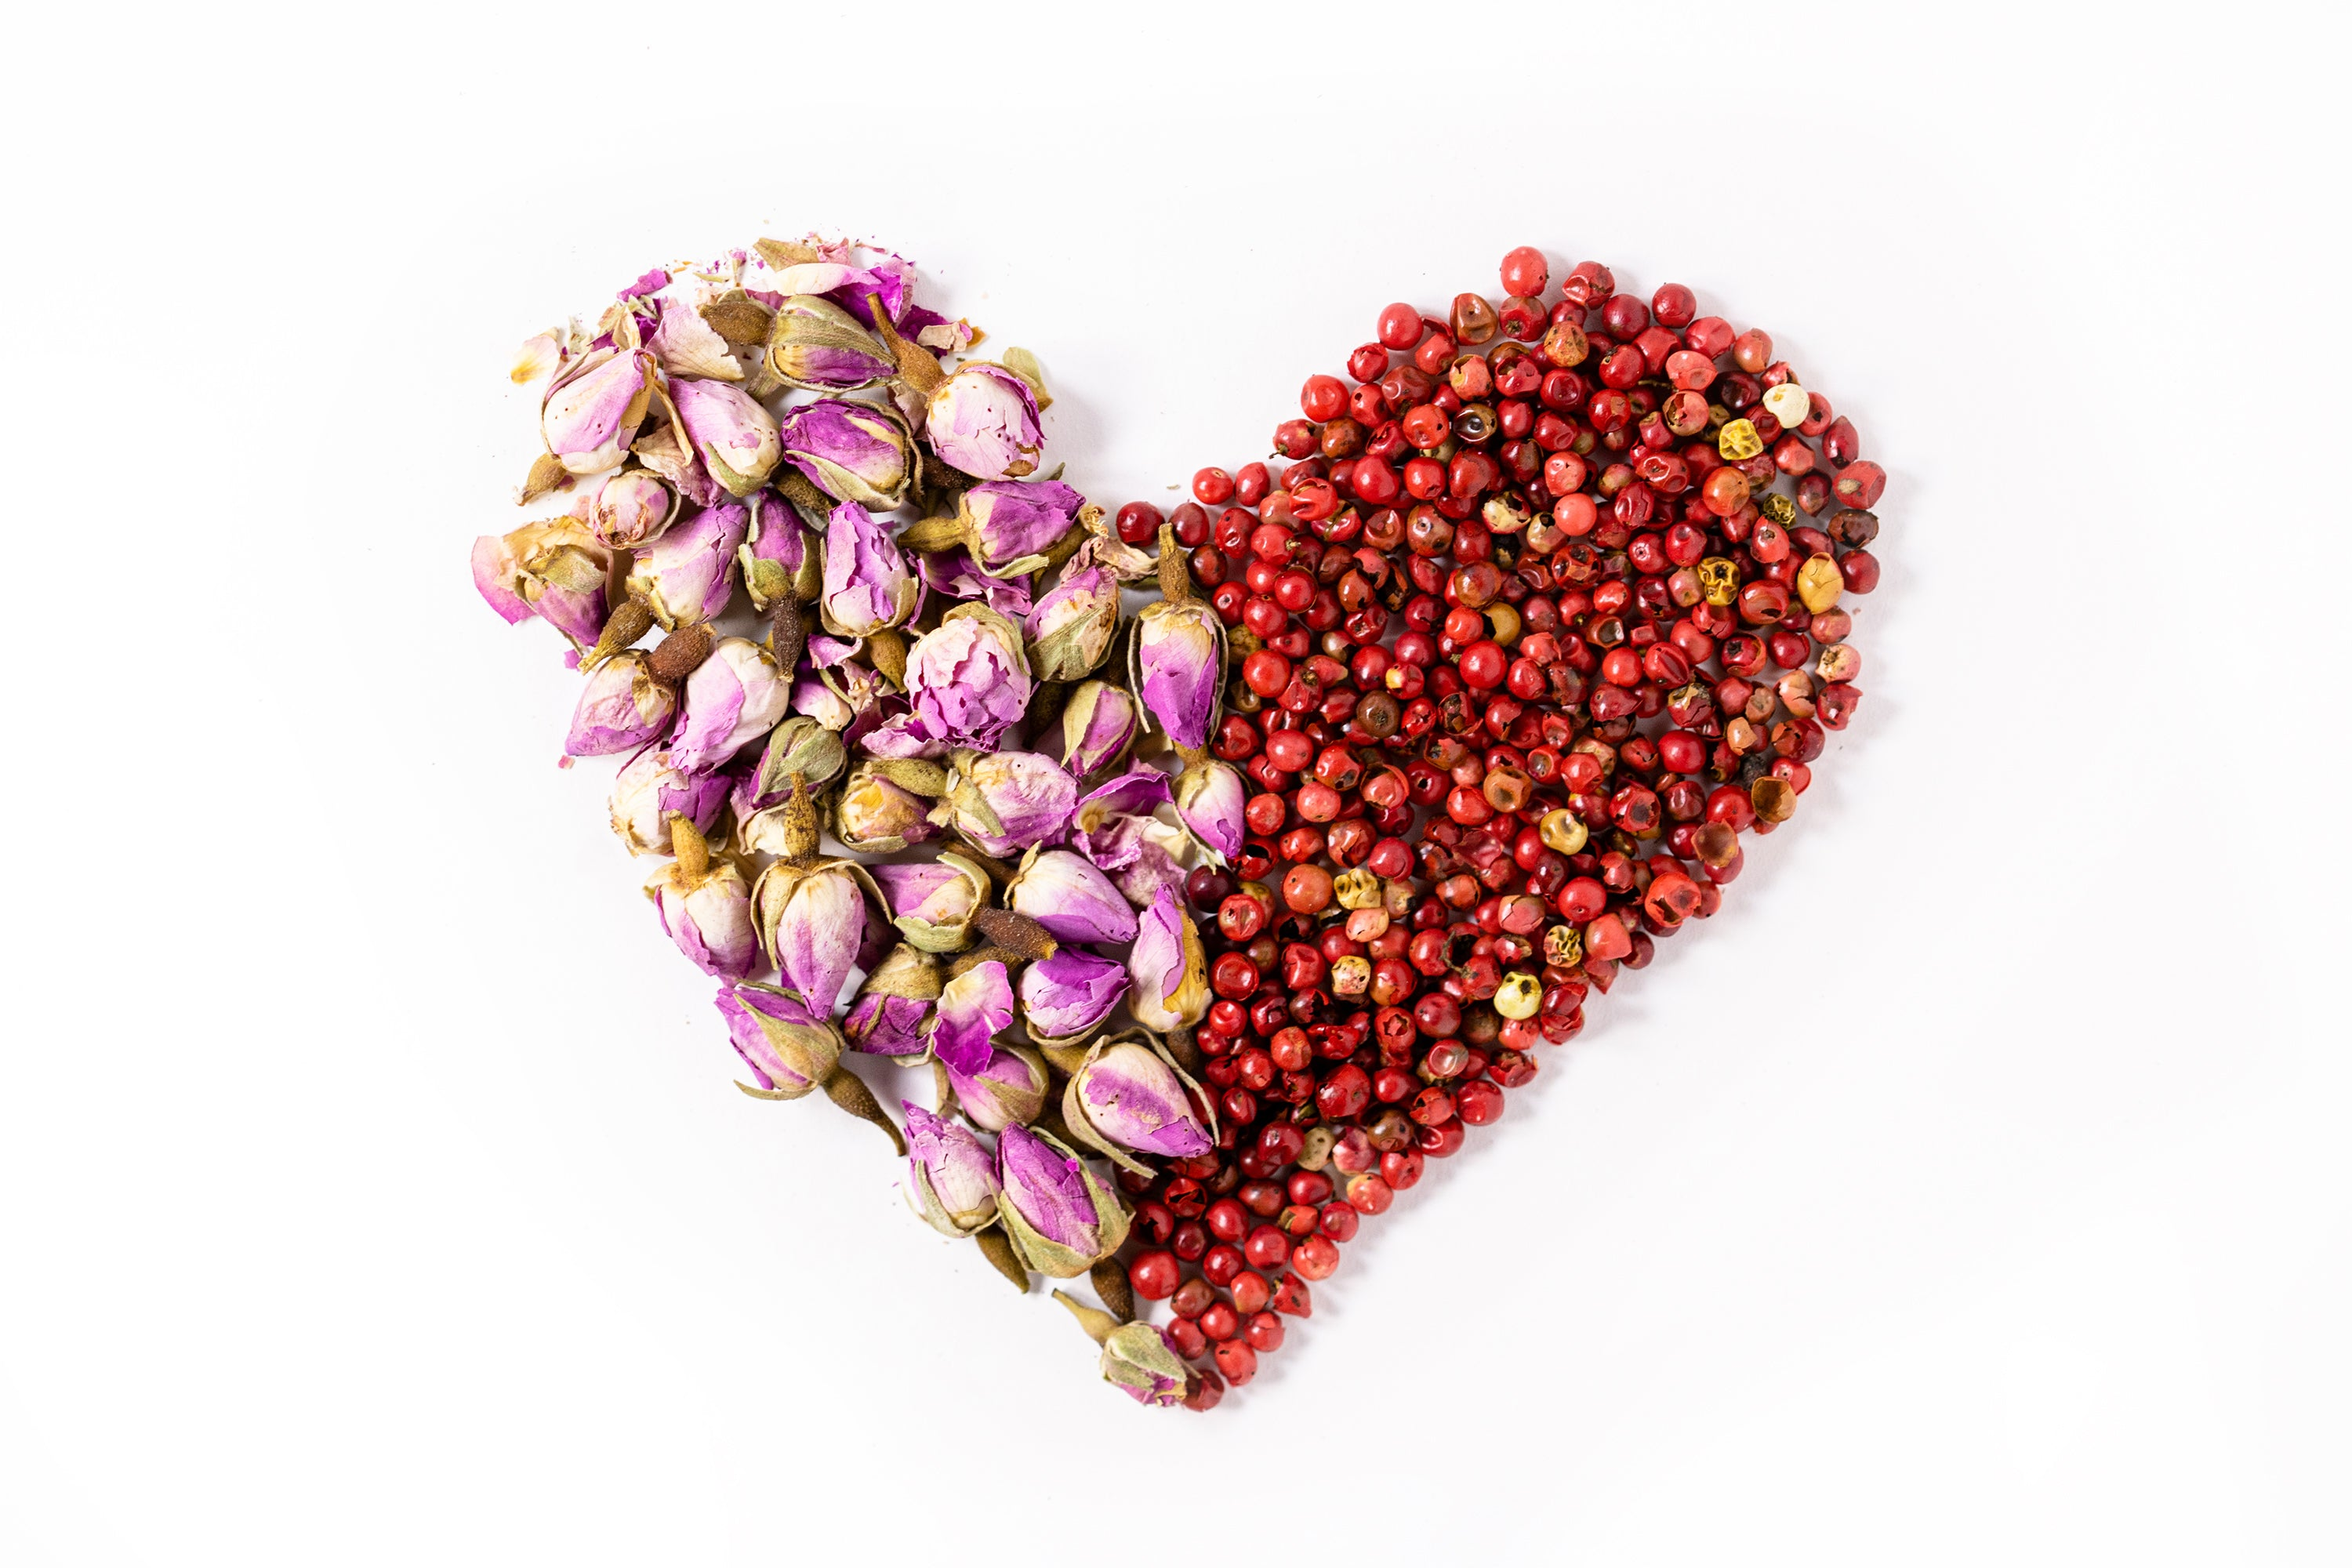 rosebuds and pink peppercorn in shape of heart